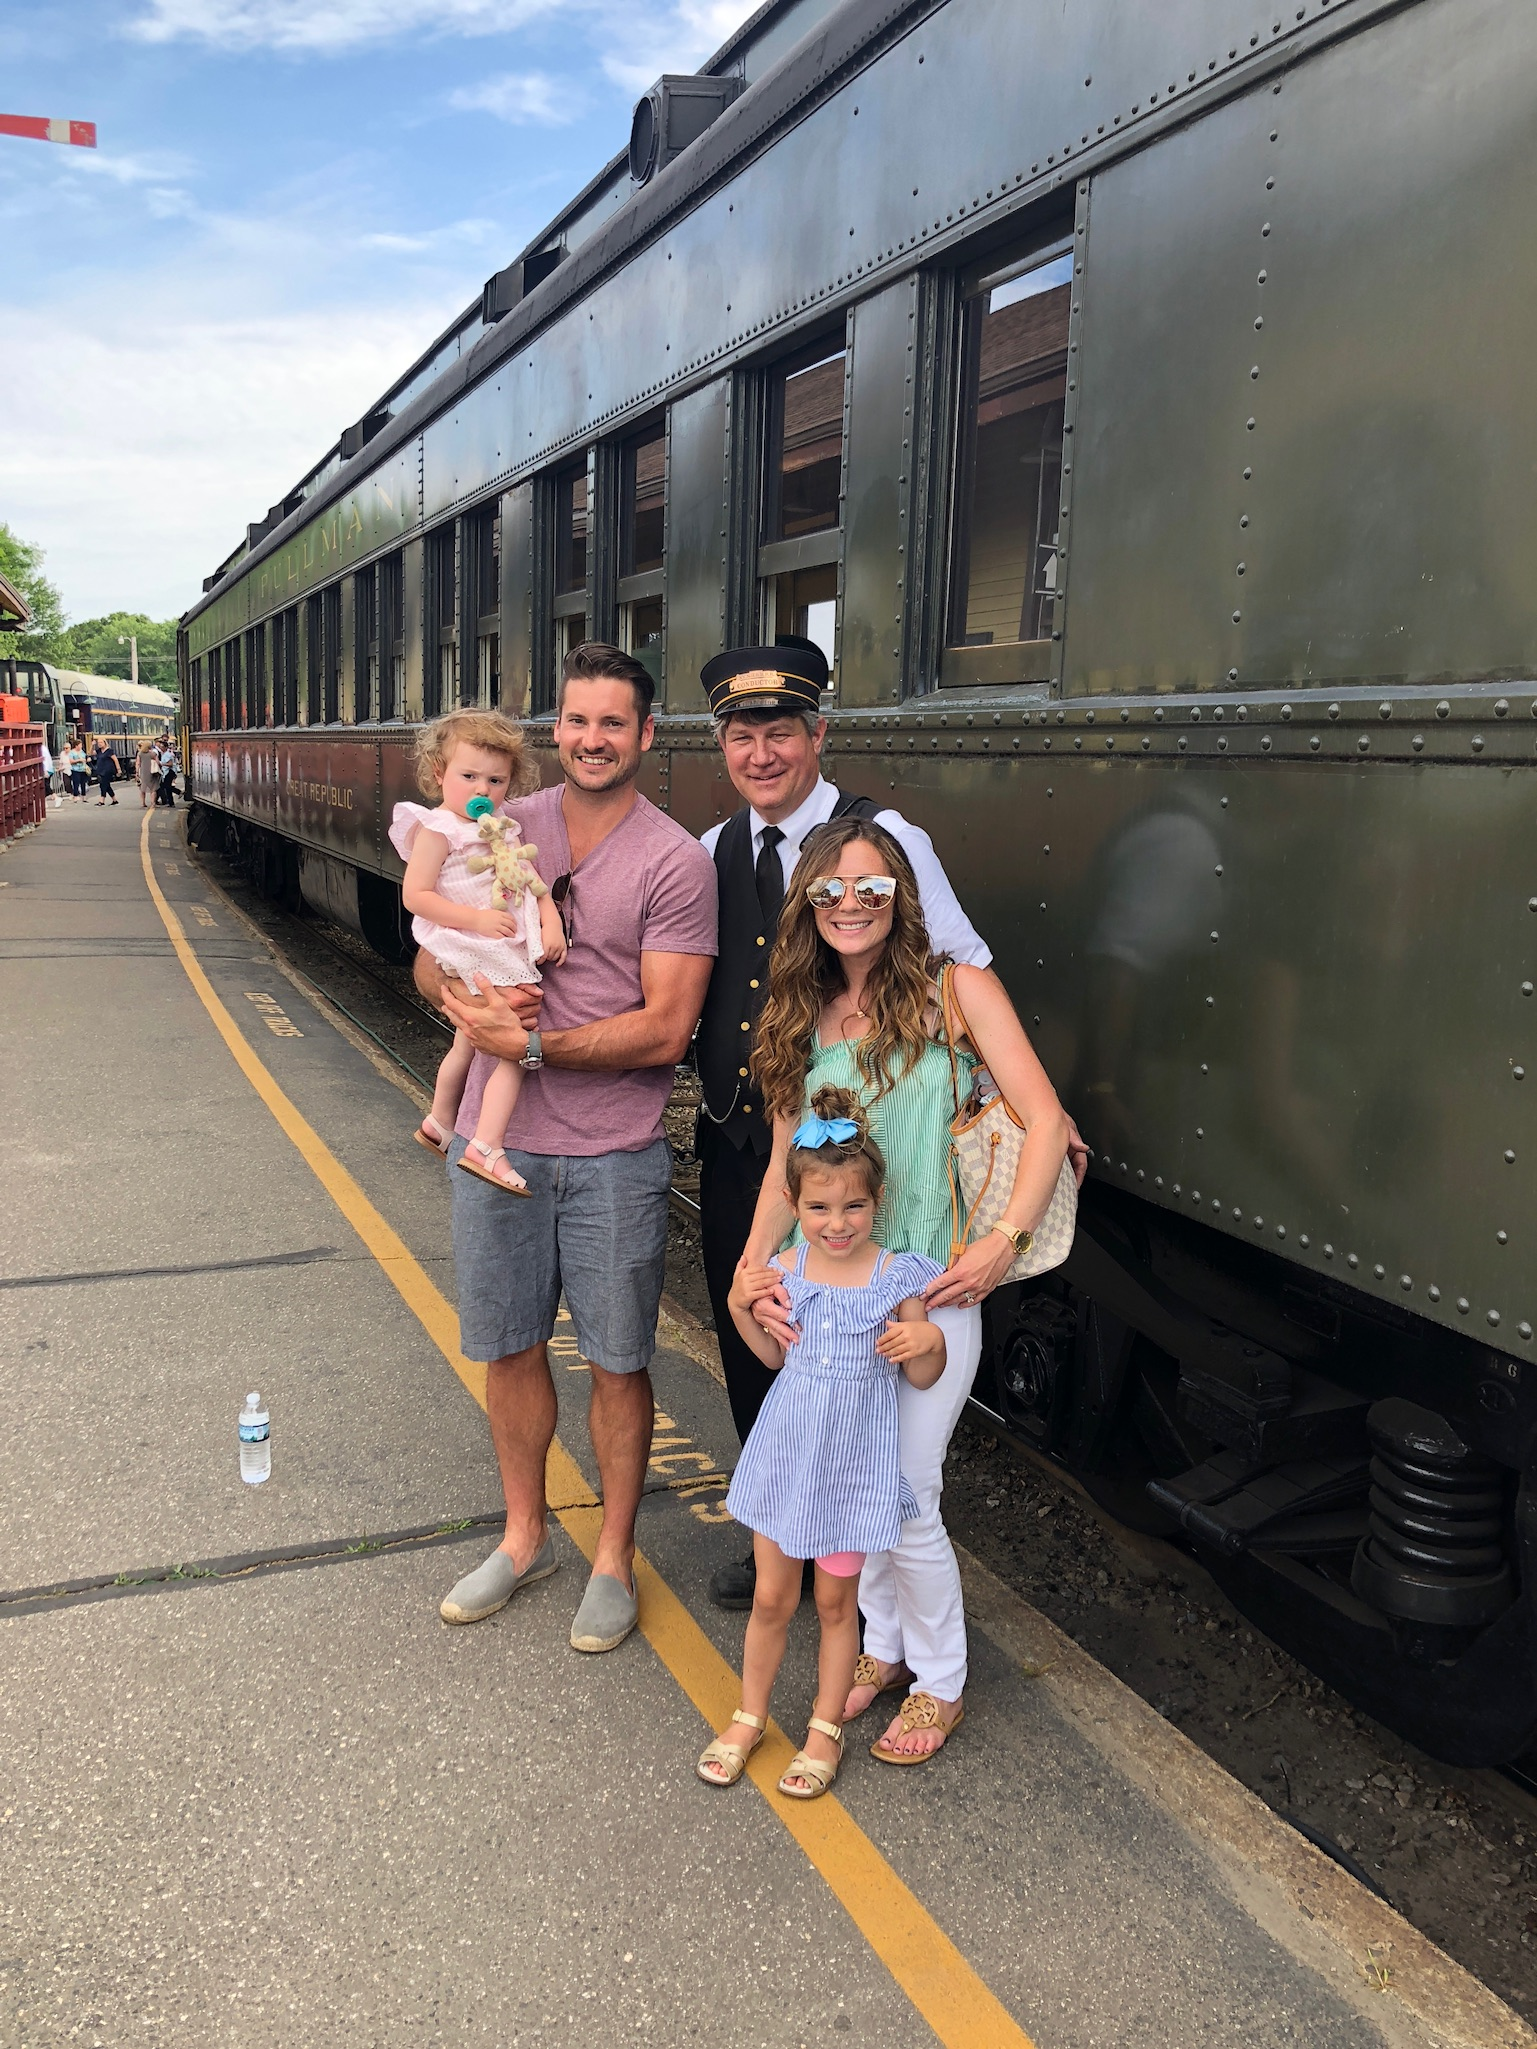 Essex Steam Train Conductor and Family